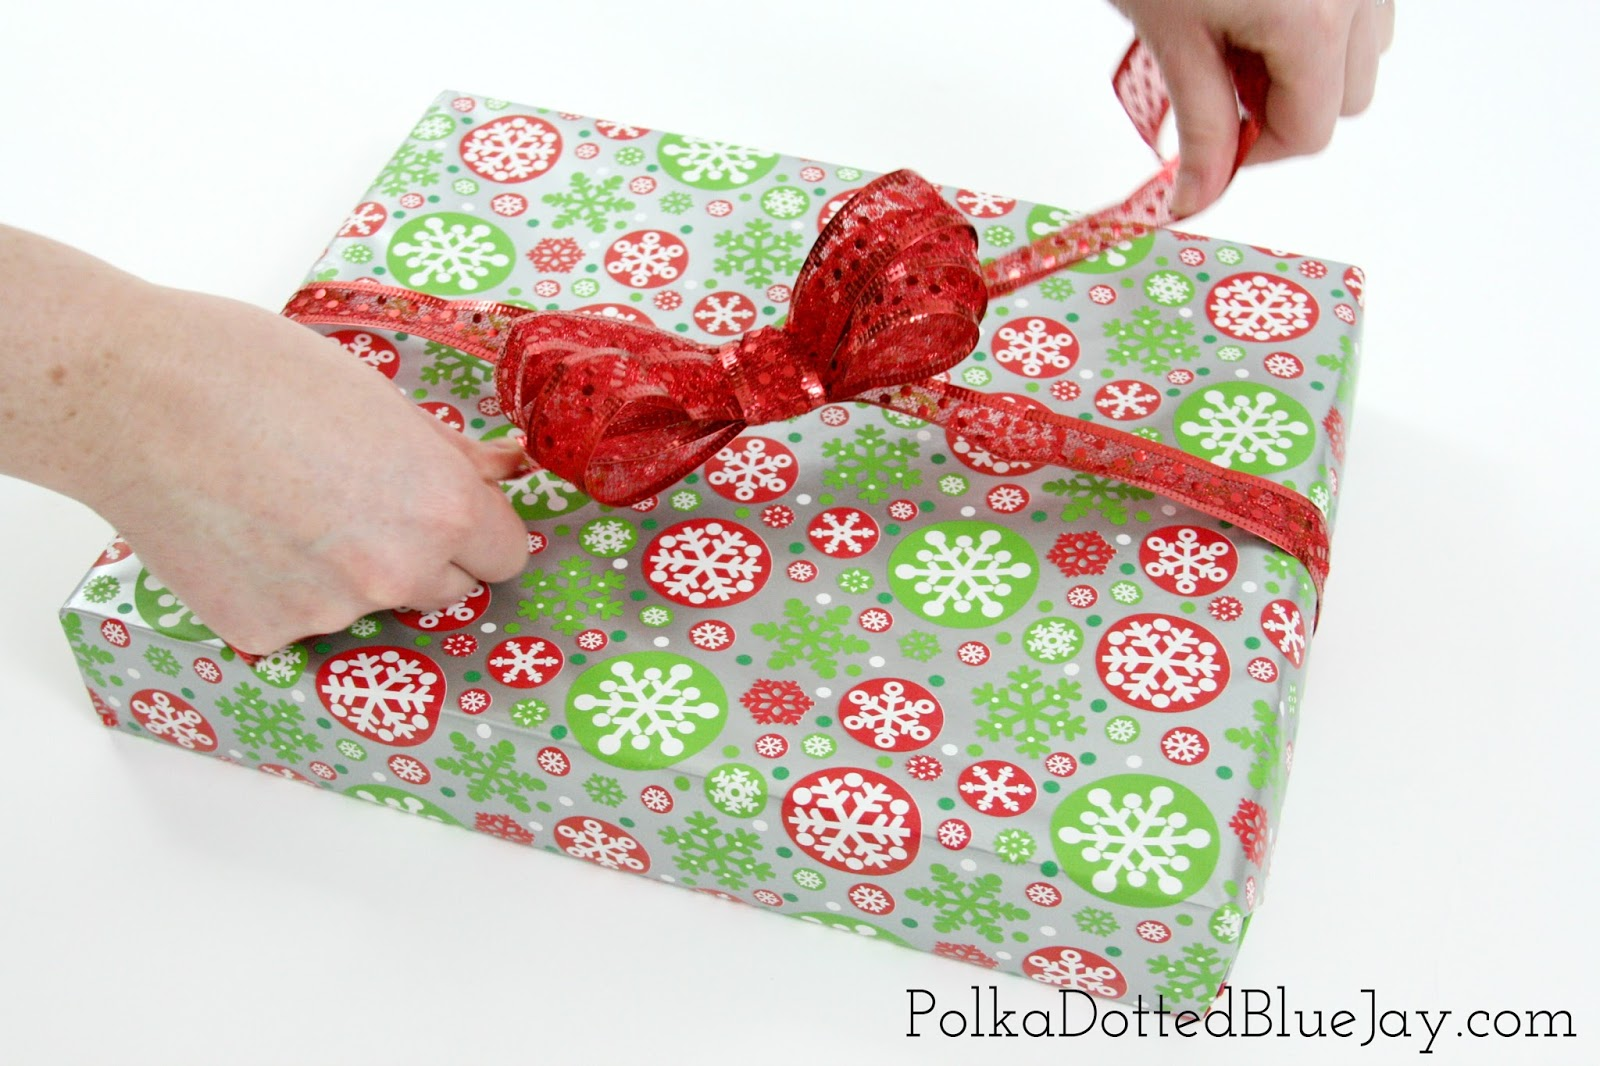 How To Make Gift Wrap Bows - Polka Dotted Blue Jay